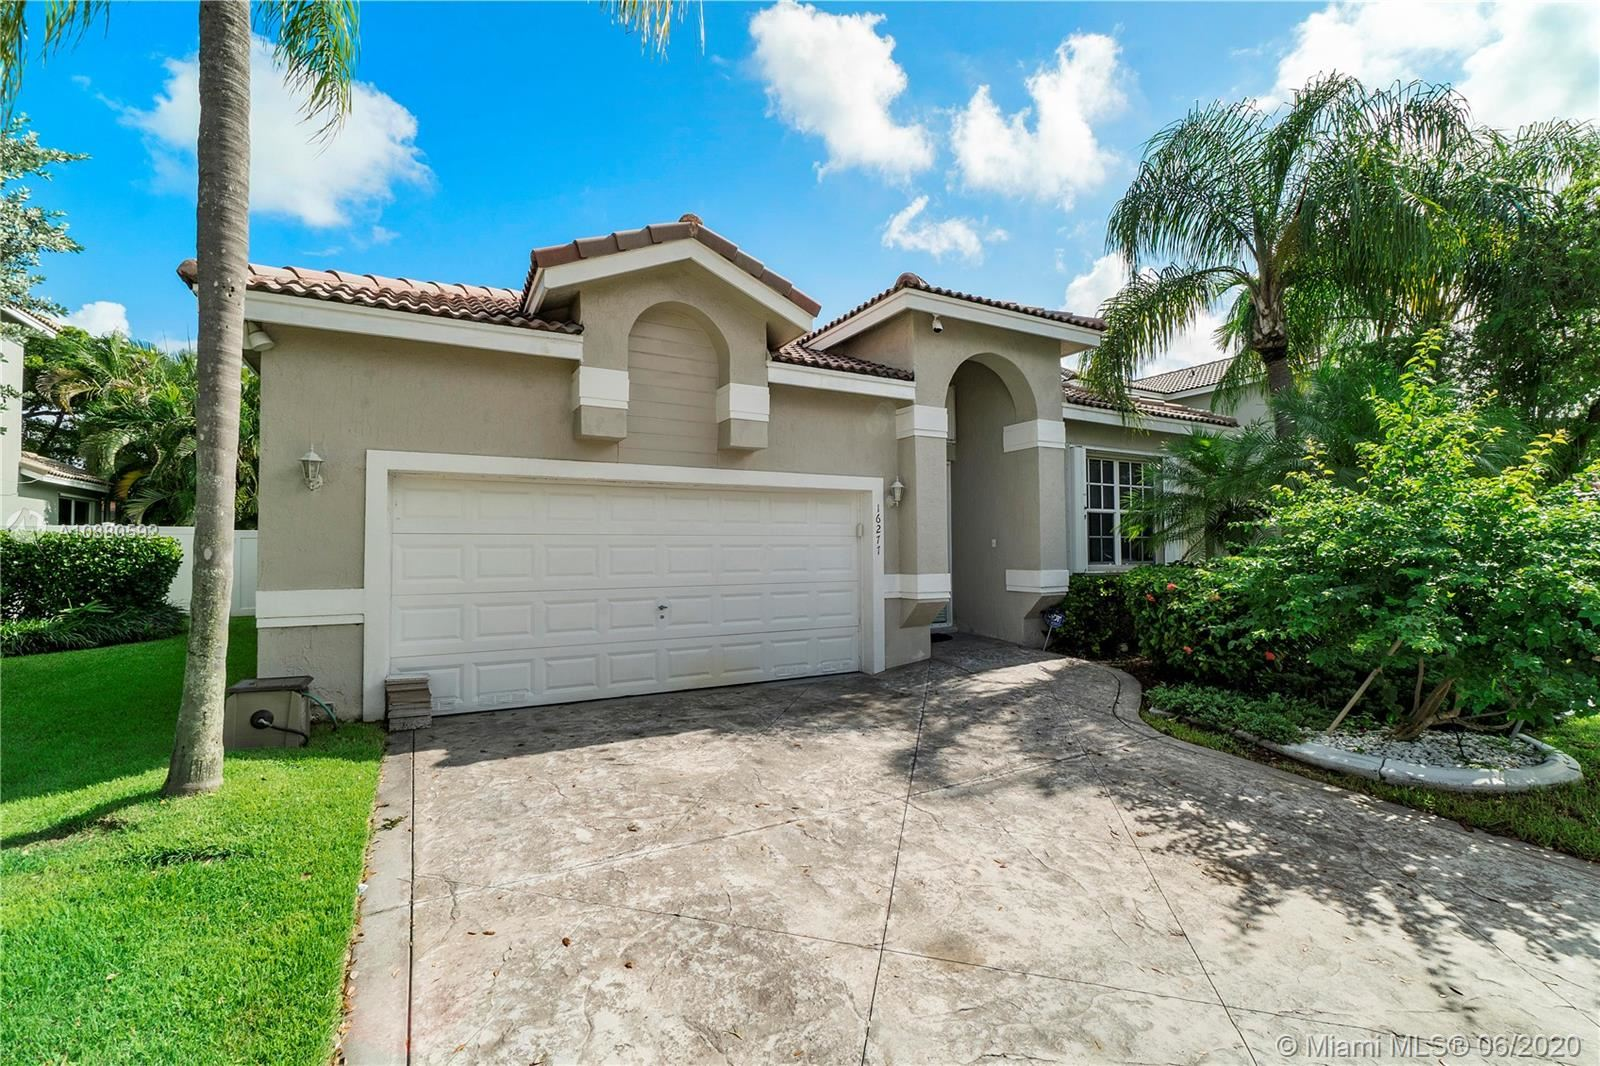 16277 NW 20th St, Pembroke Pines, FL 33028 - #: A10880592